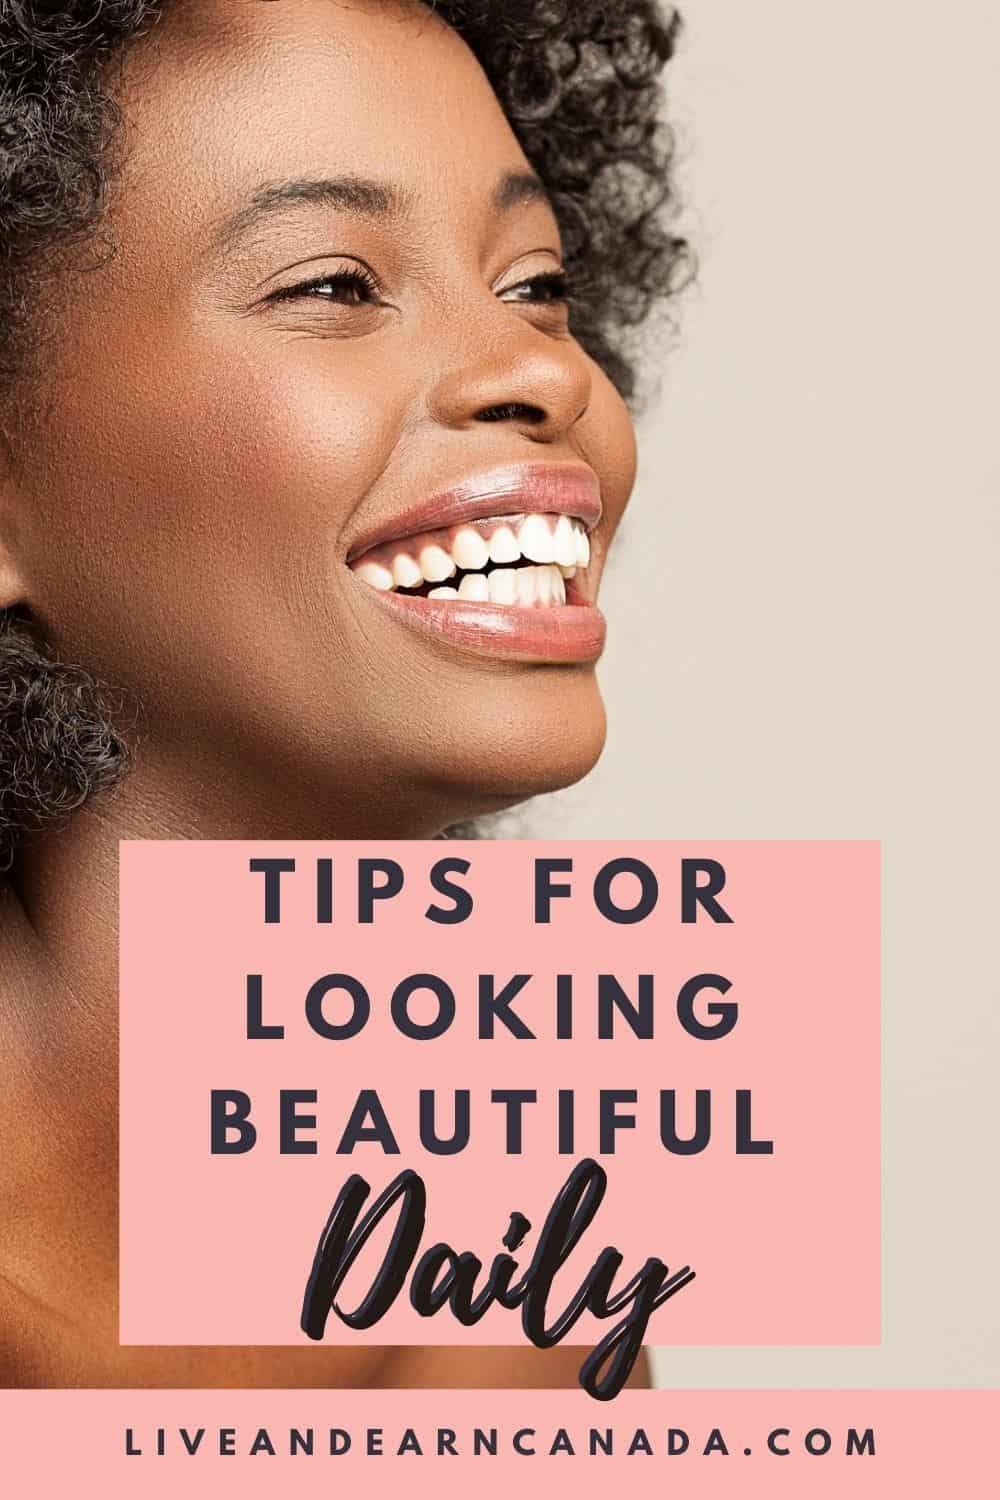 How to be beautiful all the time! How to be beautiful all the time. Beauty hacks and tips on how to be prettier, Beauty hacks and tips on how to be prettier without makeup naturally. Non superficial checklist that will make your skin and appearance glow.!